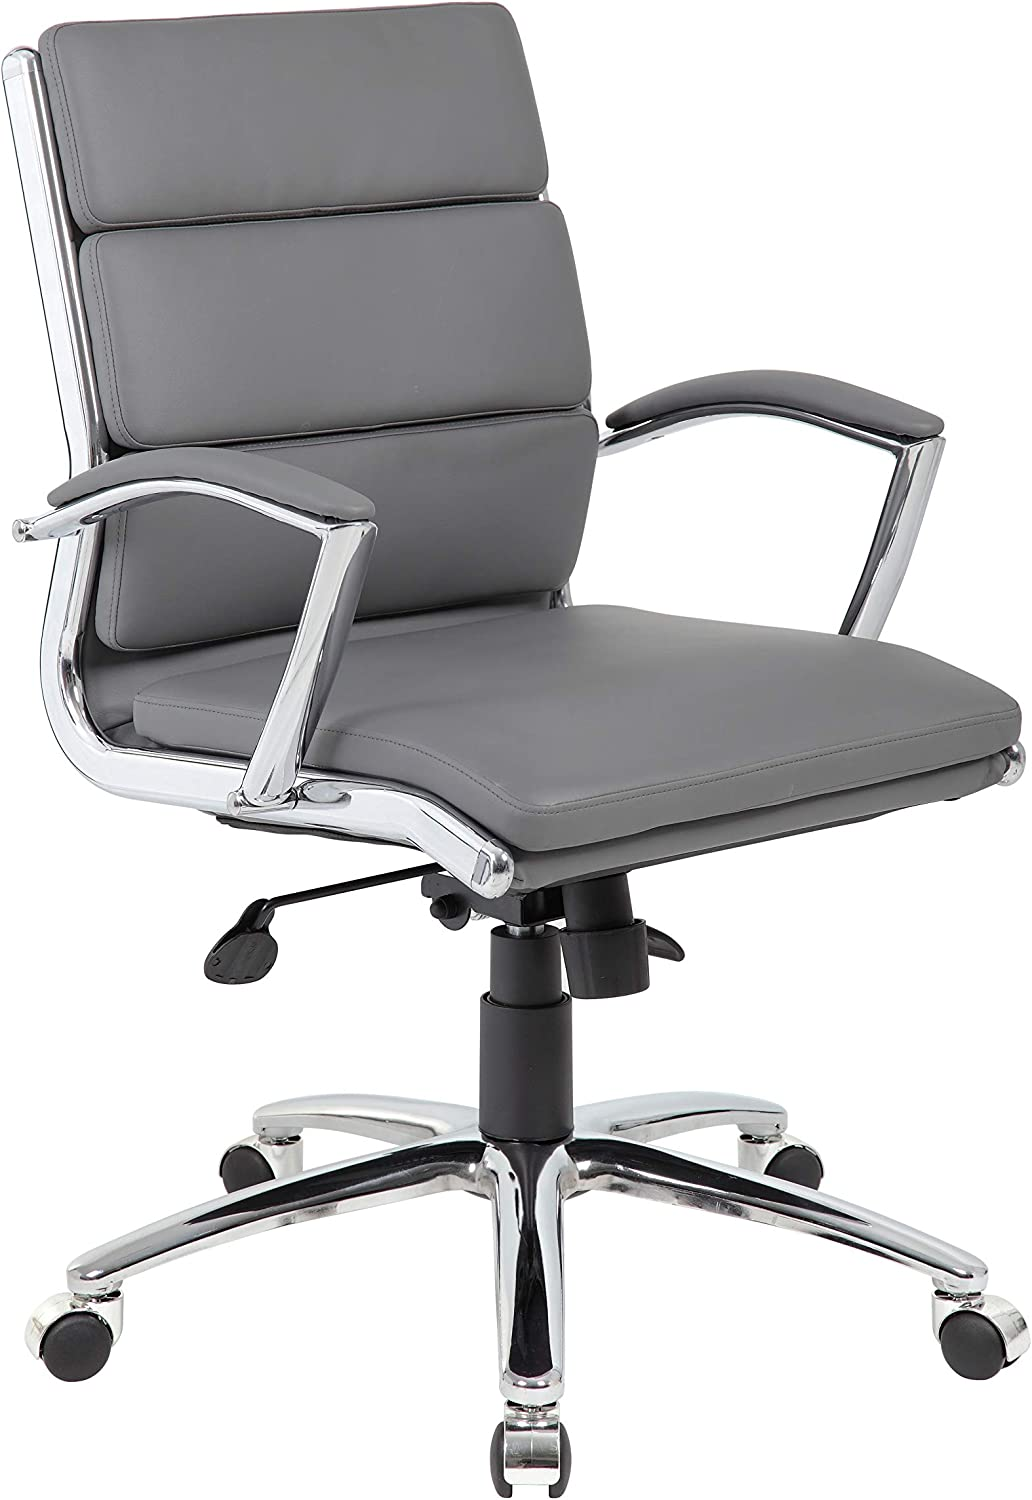 Boss Office Products (BOSXK) B9476-GY Office Chair, Grey